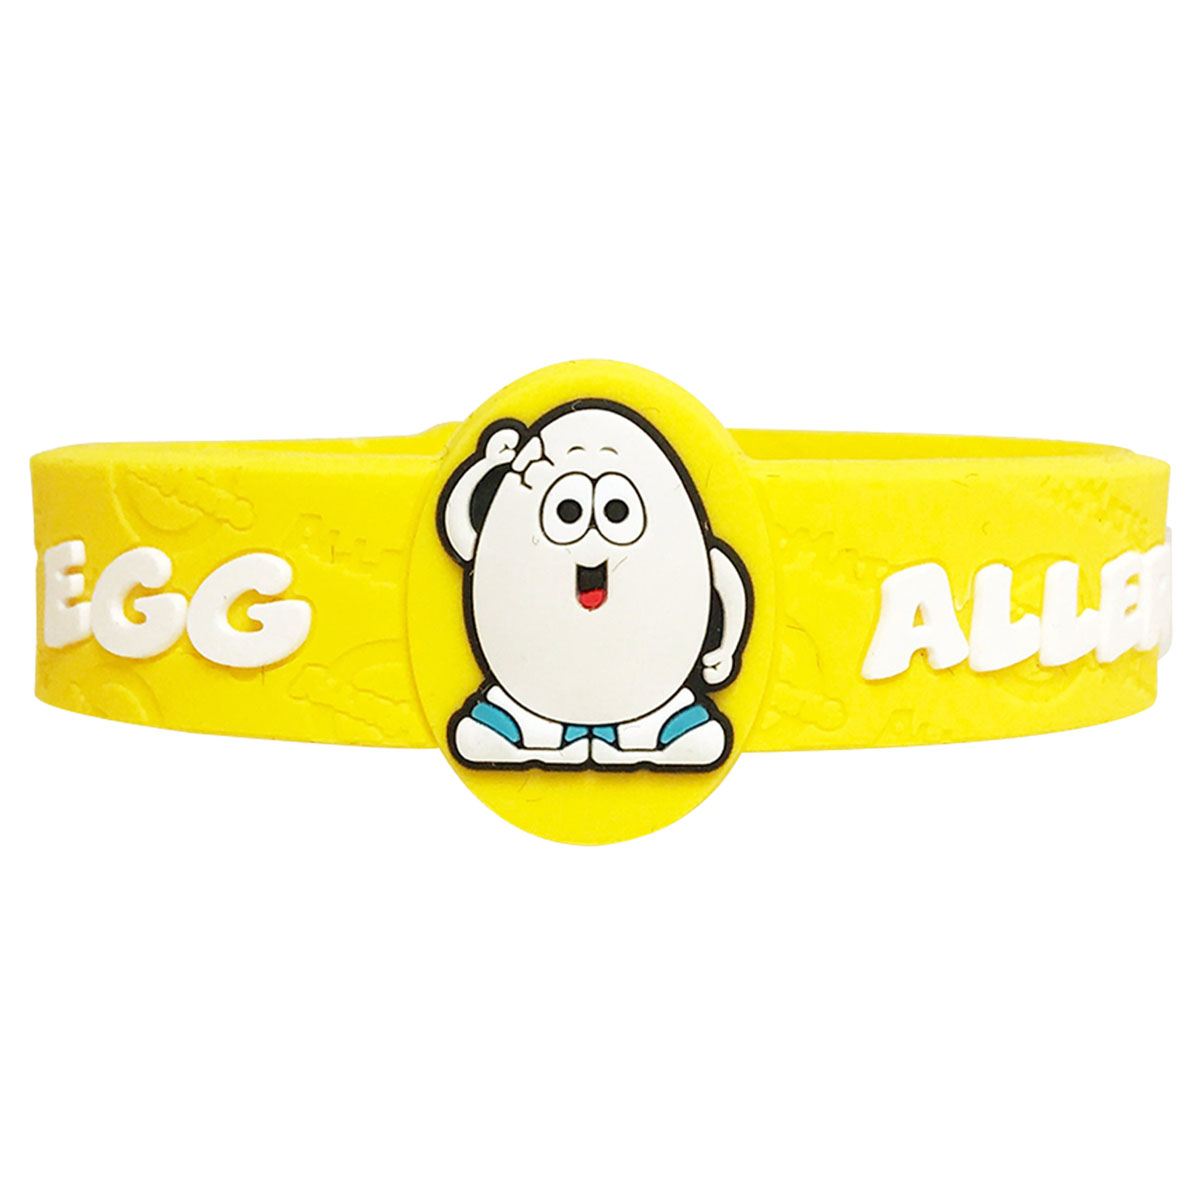 Children's Medical Alert Bracelet for Egg Allergies AWABR10049